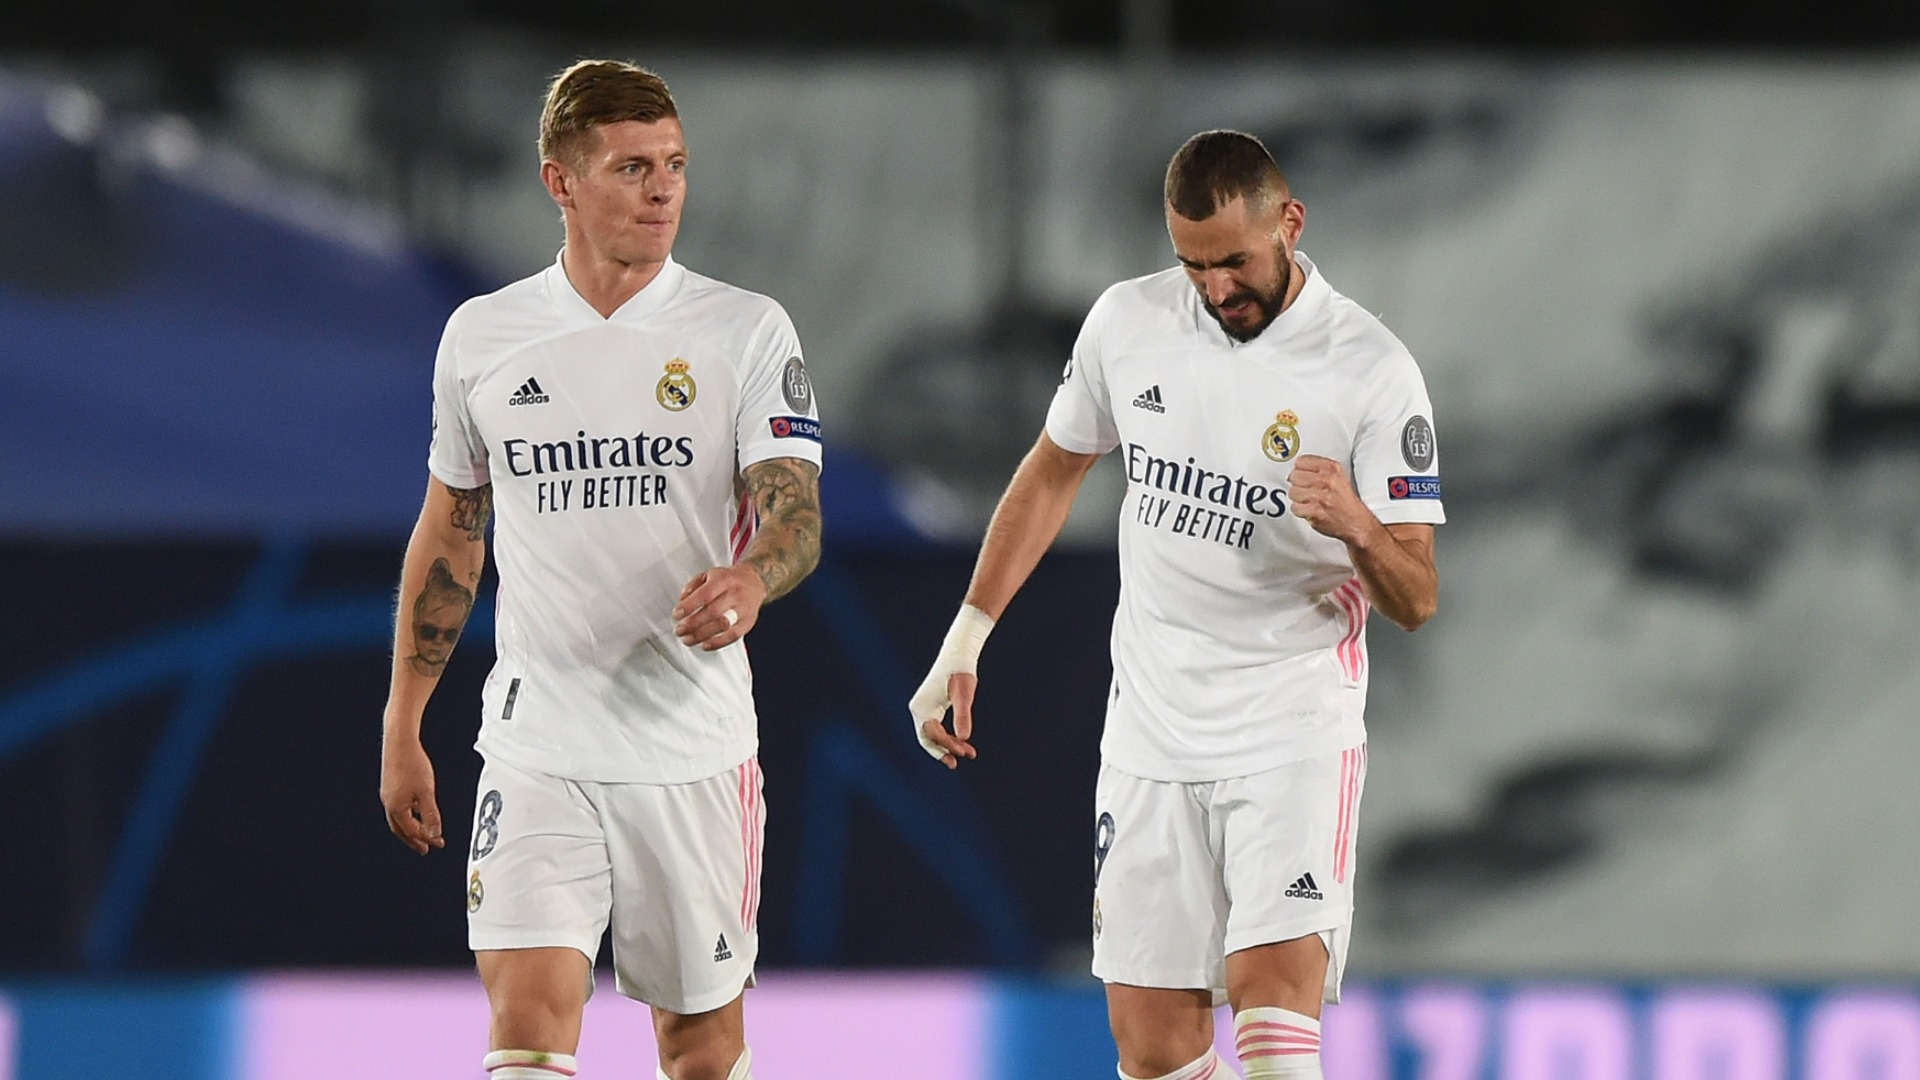 Injury-hit Real Madrid have been linked with both Kylian Mbappe and Erling Haaland but will have neither against Atalanta.